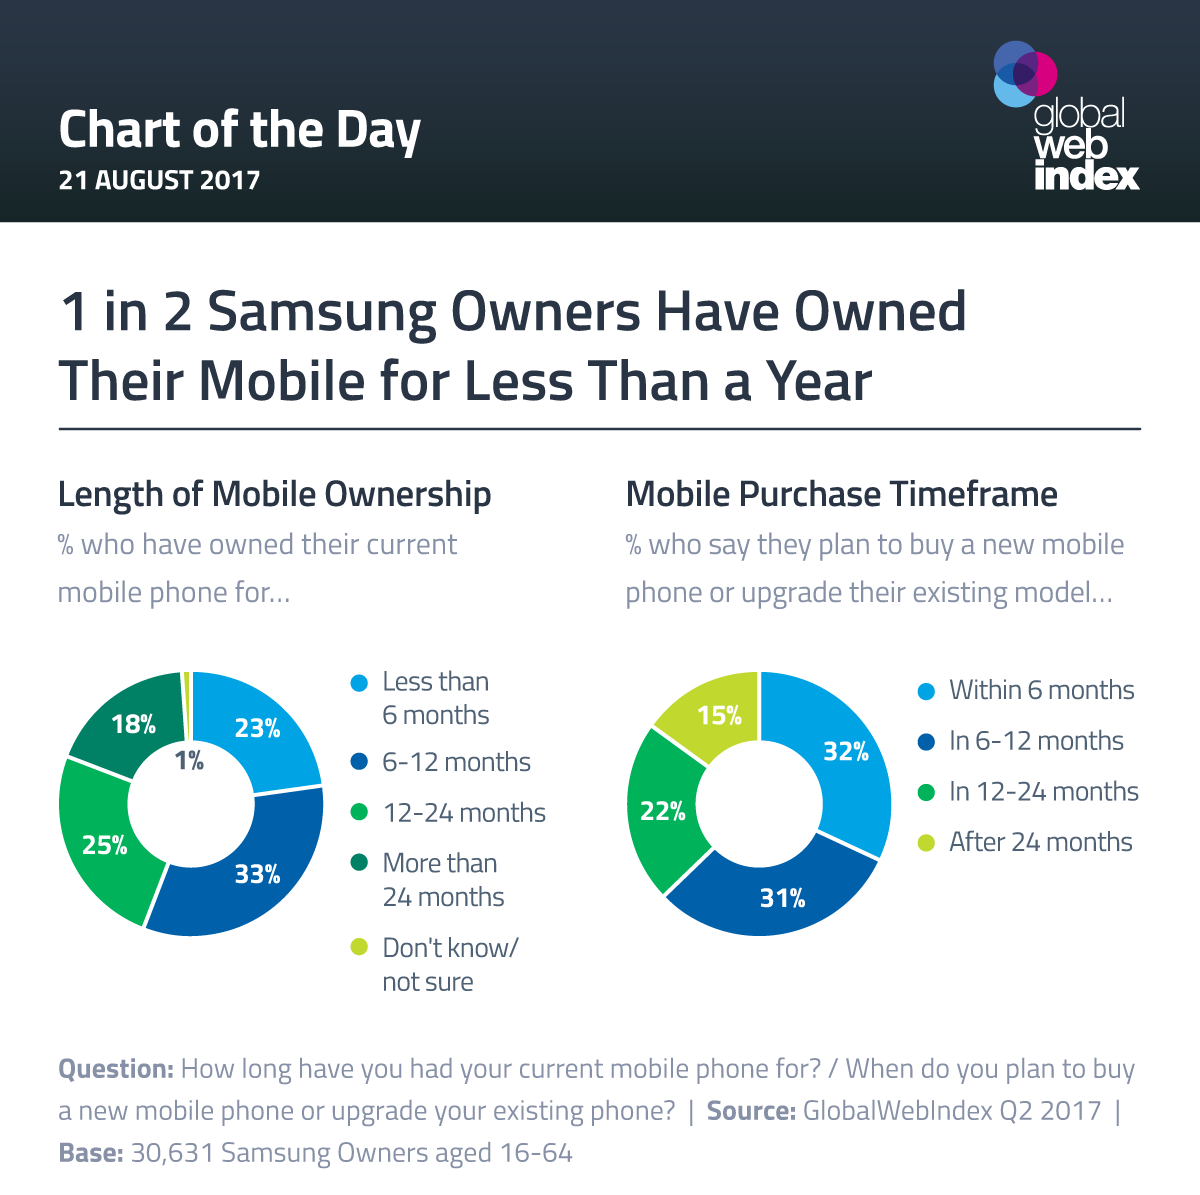 1 in 2 Samsung Owners Have Owned Their Mobile for Less Than a Year